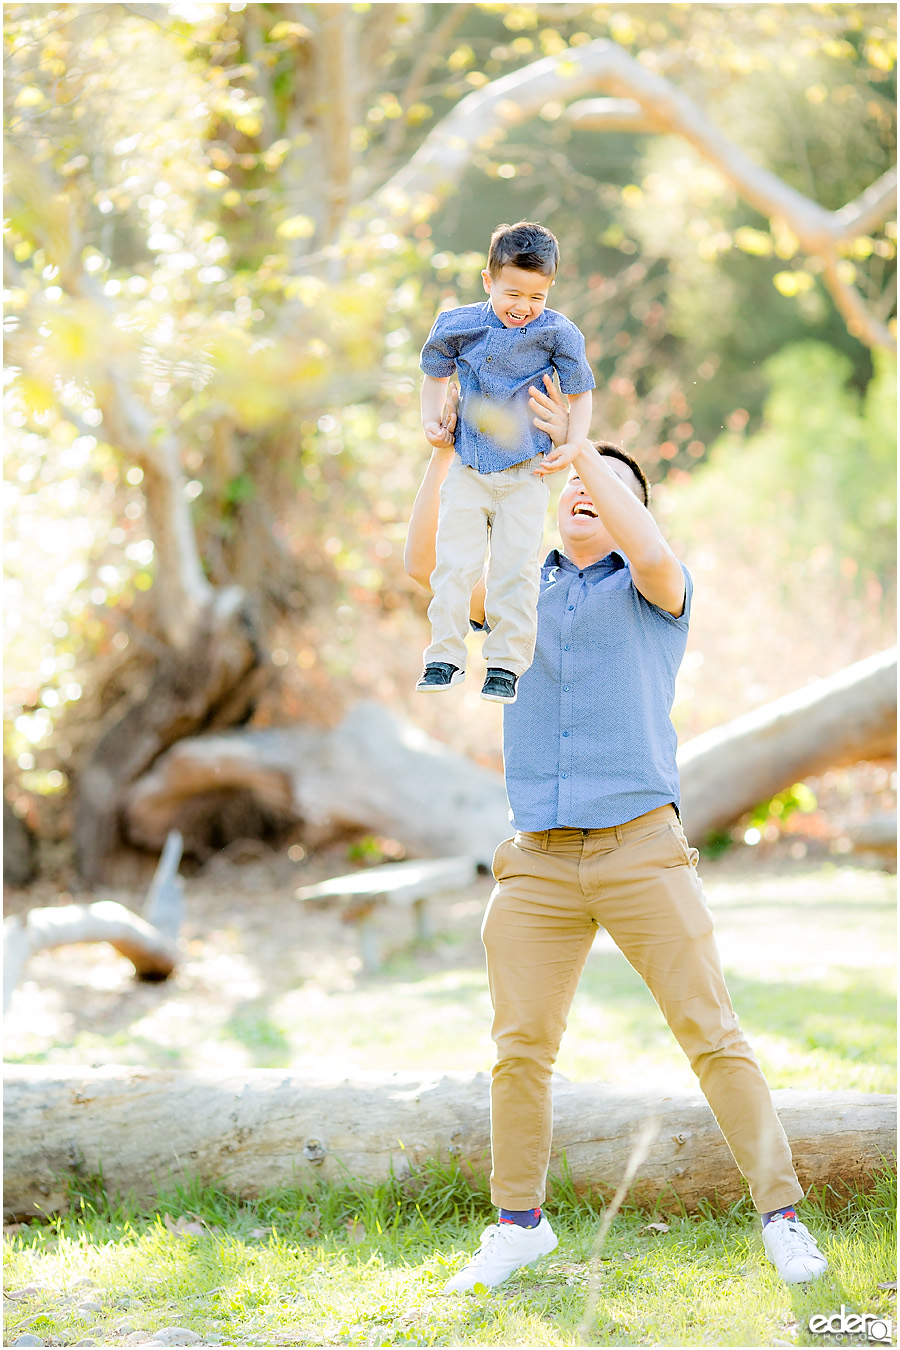 Spring Mini Portrait Session - son and dad playing